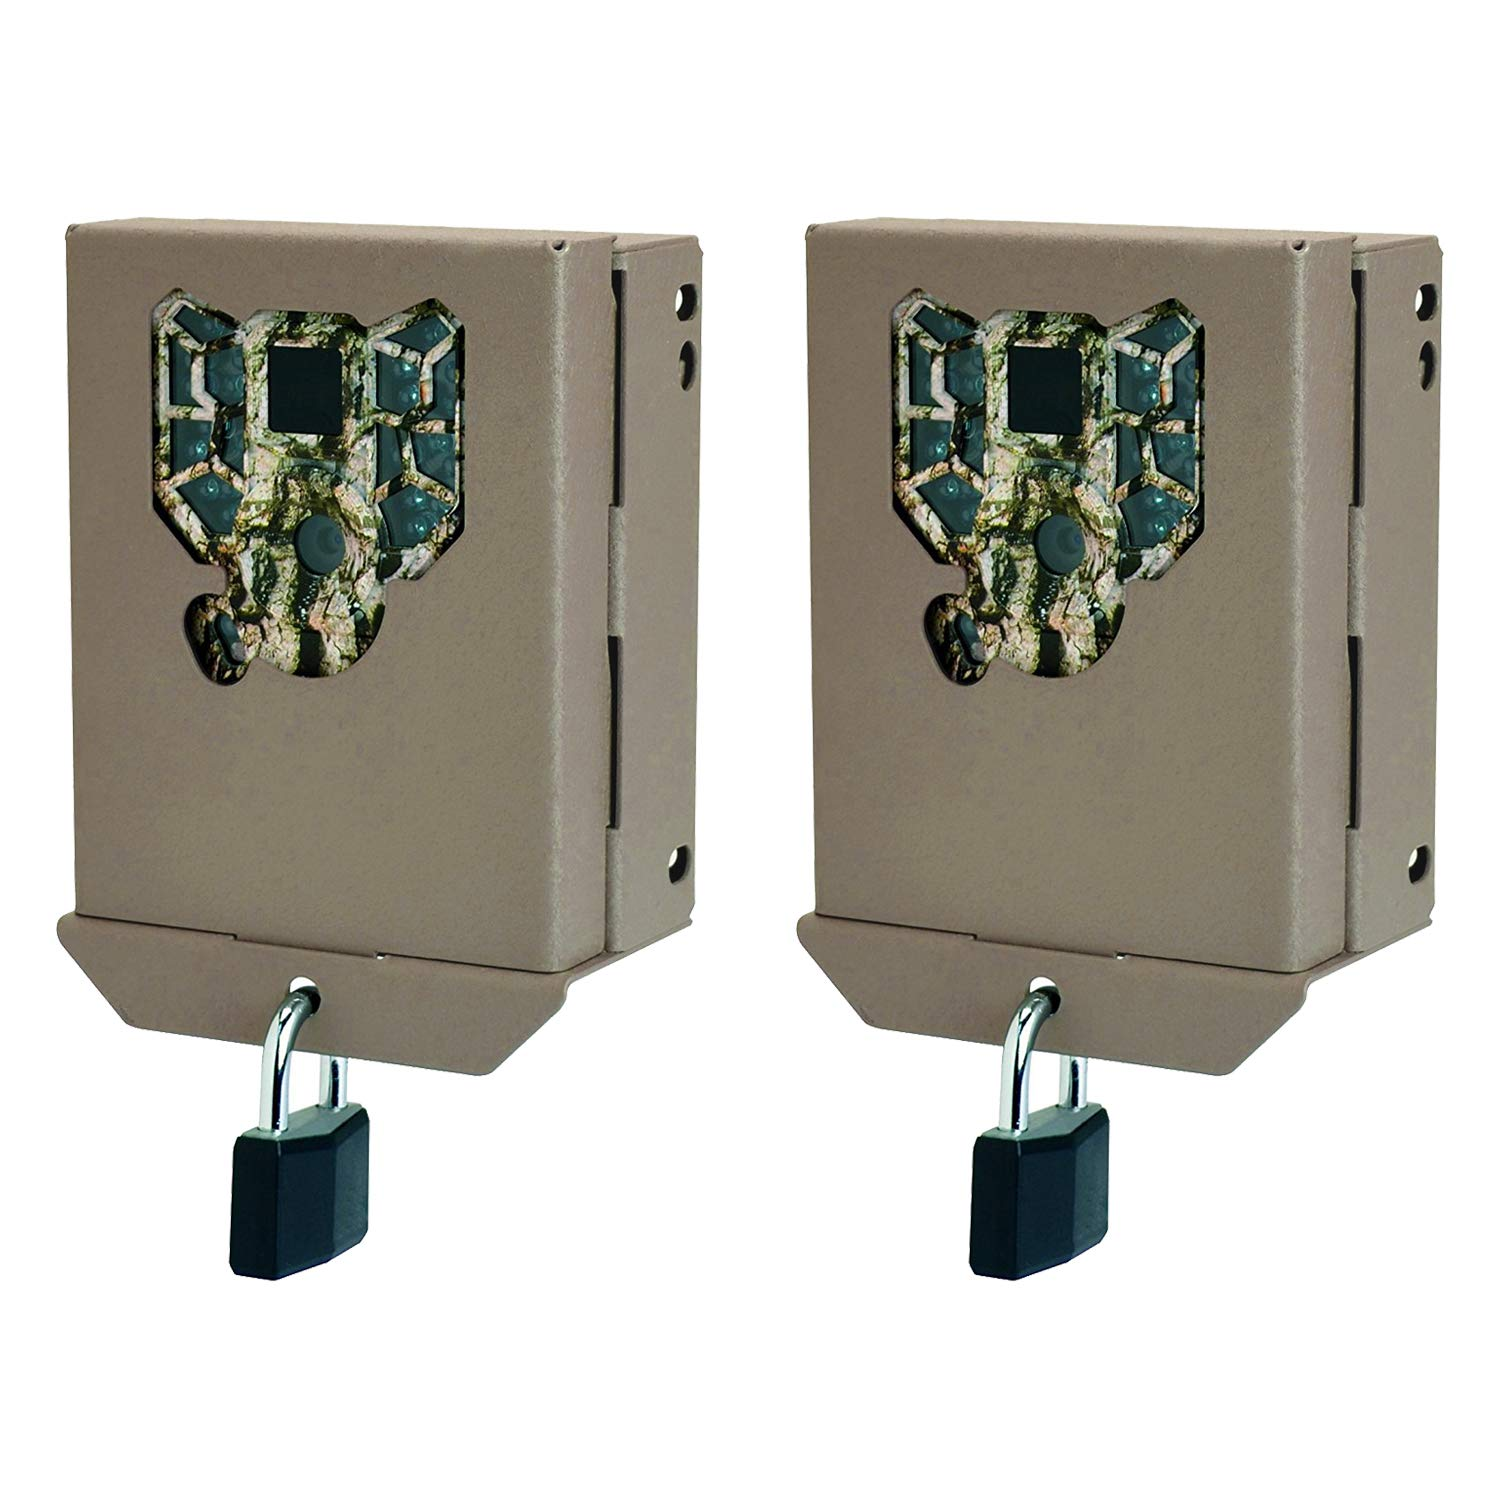 Stealth Cam PX Series Game Trail Camera Steel Security Case Box, 2 Pack   BBPX